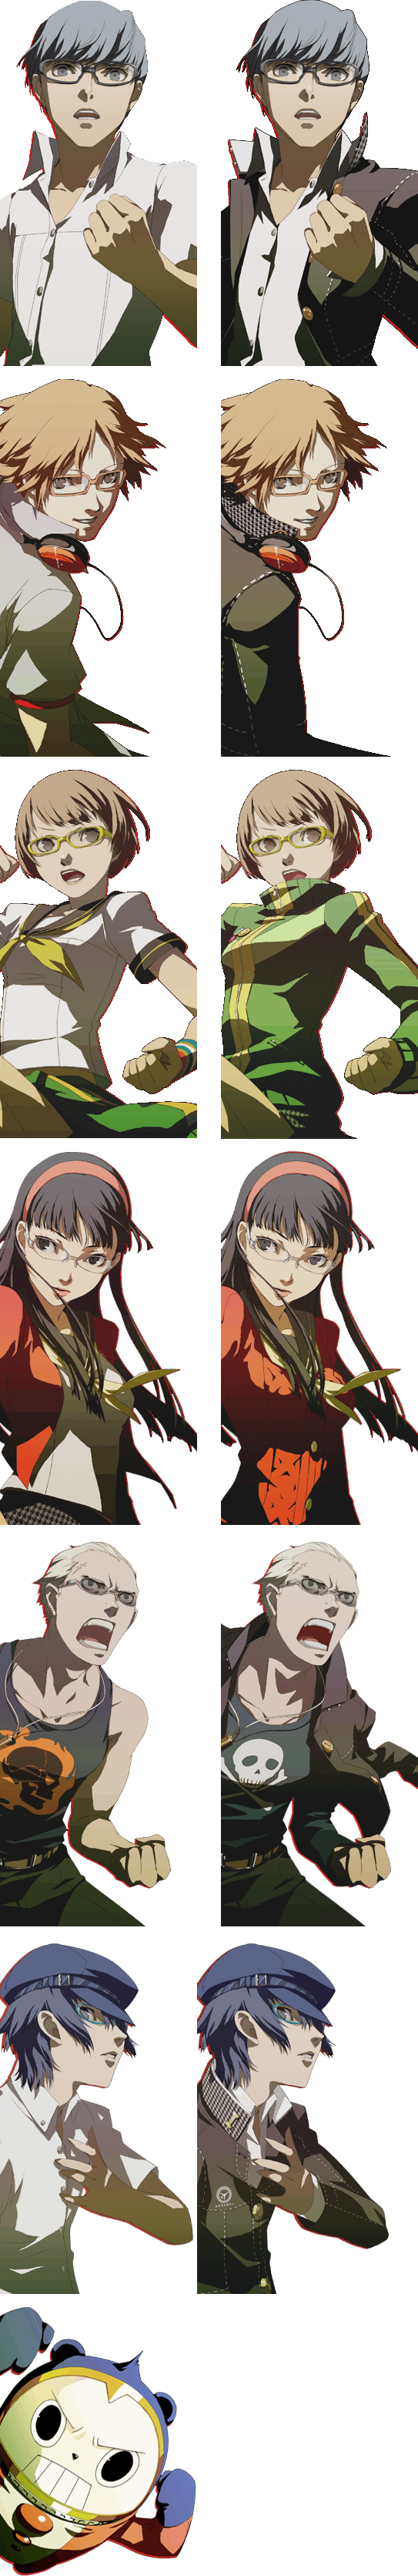 Persona 4 - 3- and 4-Panel All Out Attack